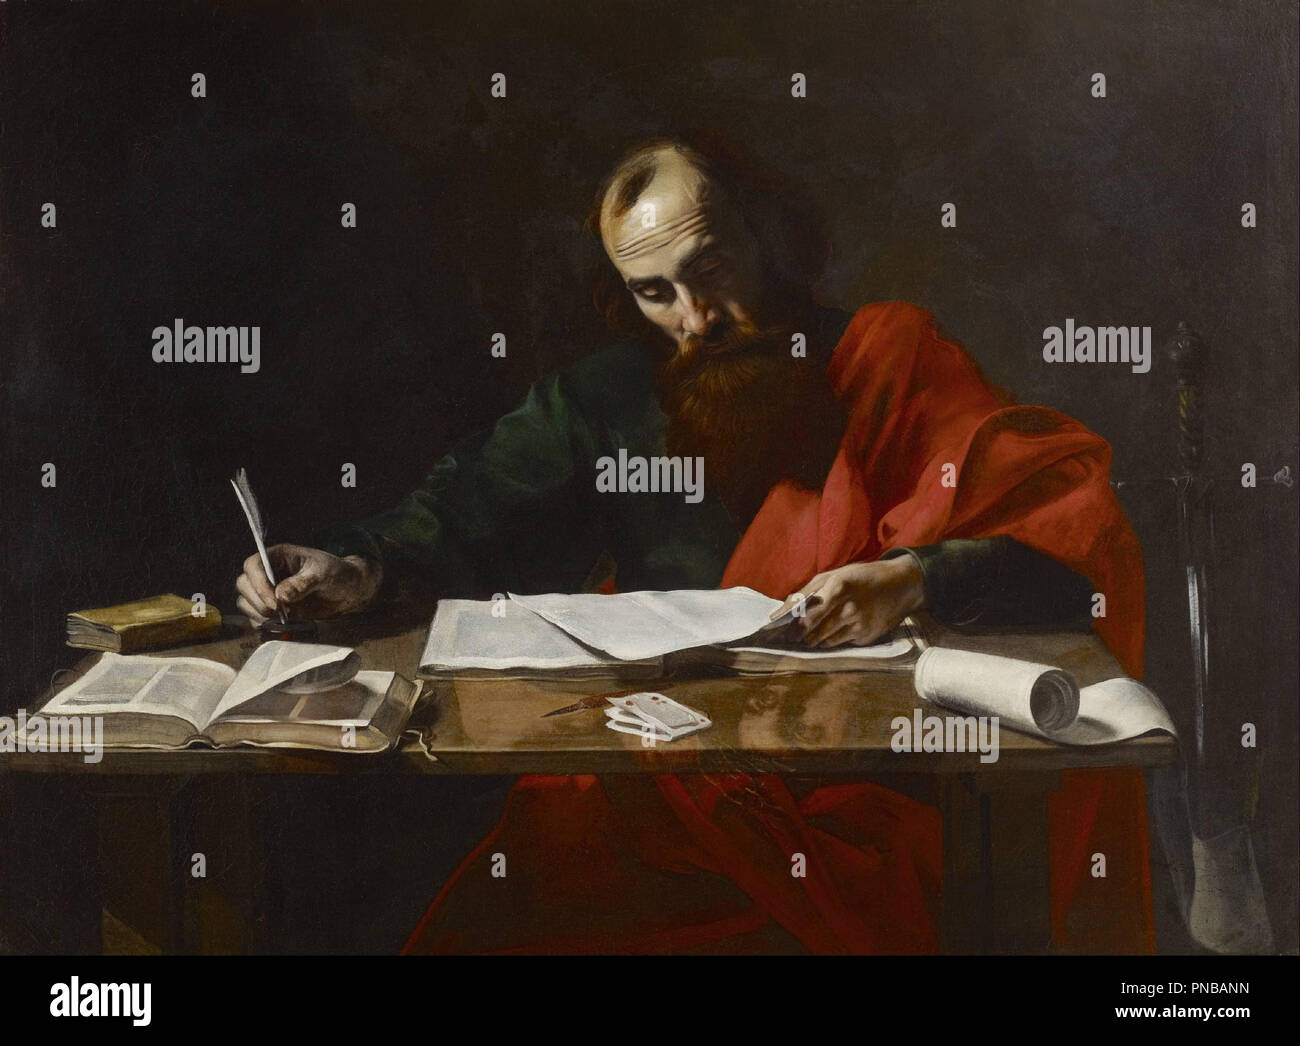 Saint Paul Writing His Epistles. Date/Period: Between ca. 1618 and ca. 1620. Painting. Oil on canvas. Height: 99.38 mm (3.91 in); Width: 52.38 mm (2.06 in). Author: VALENTIN DE BOULOGNE. - Stock Image